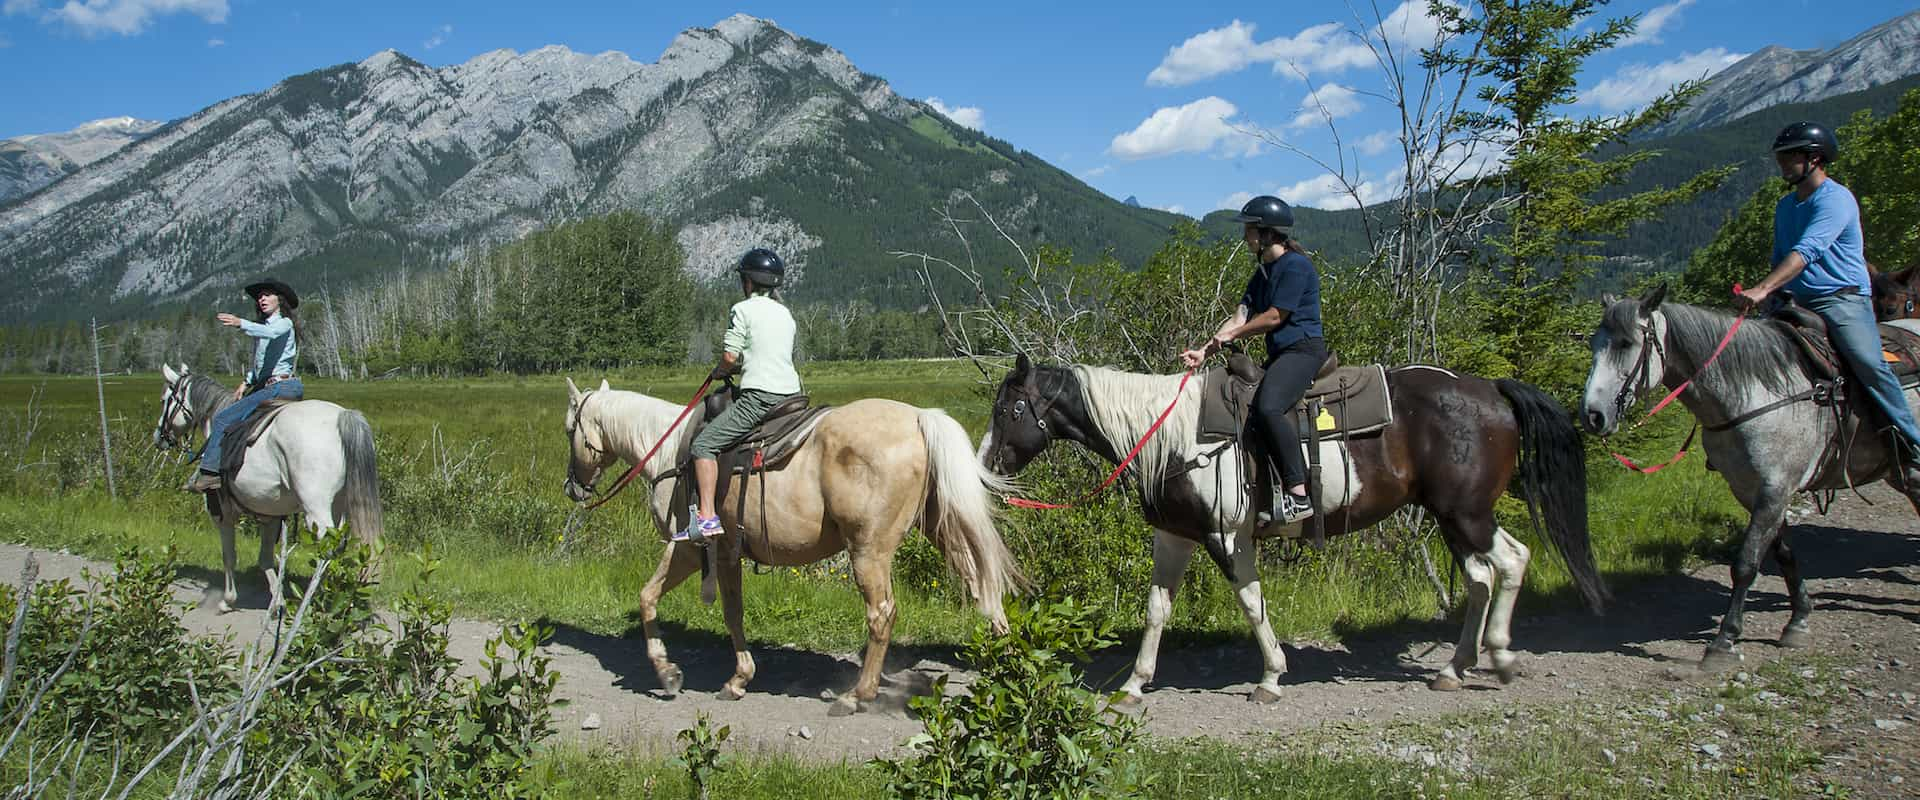 Explore Banff on the Bow River horseback ride with Discover Banff Tours in the Canadian Rockies